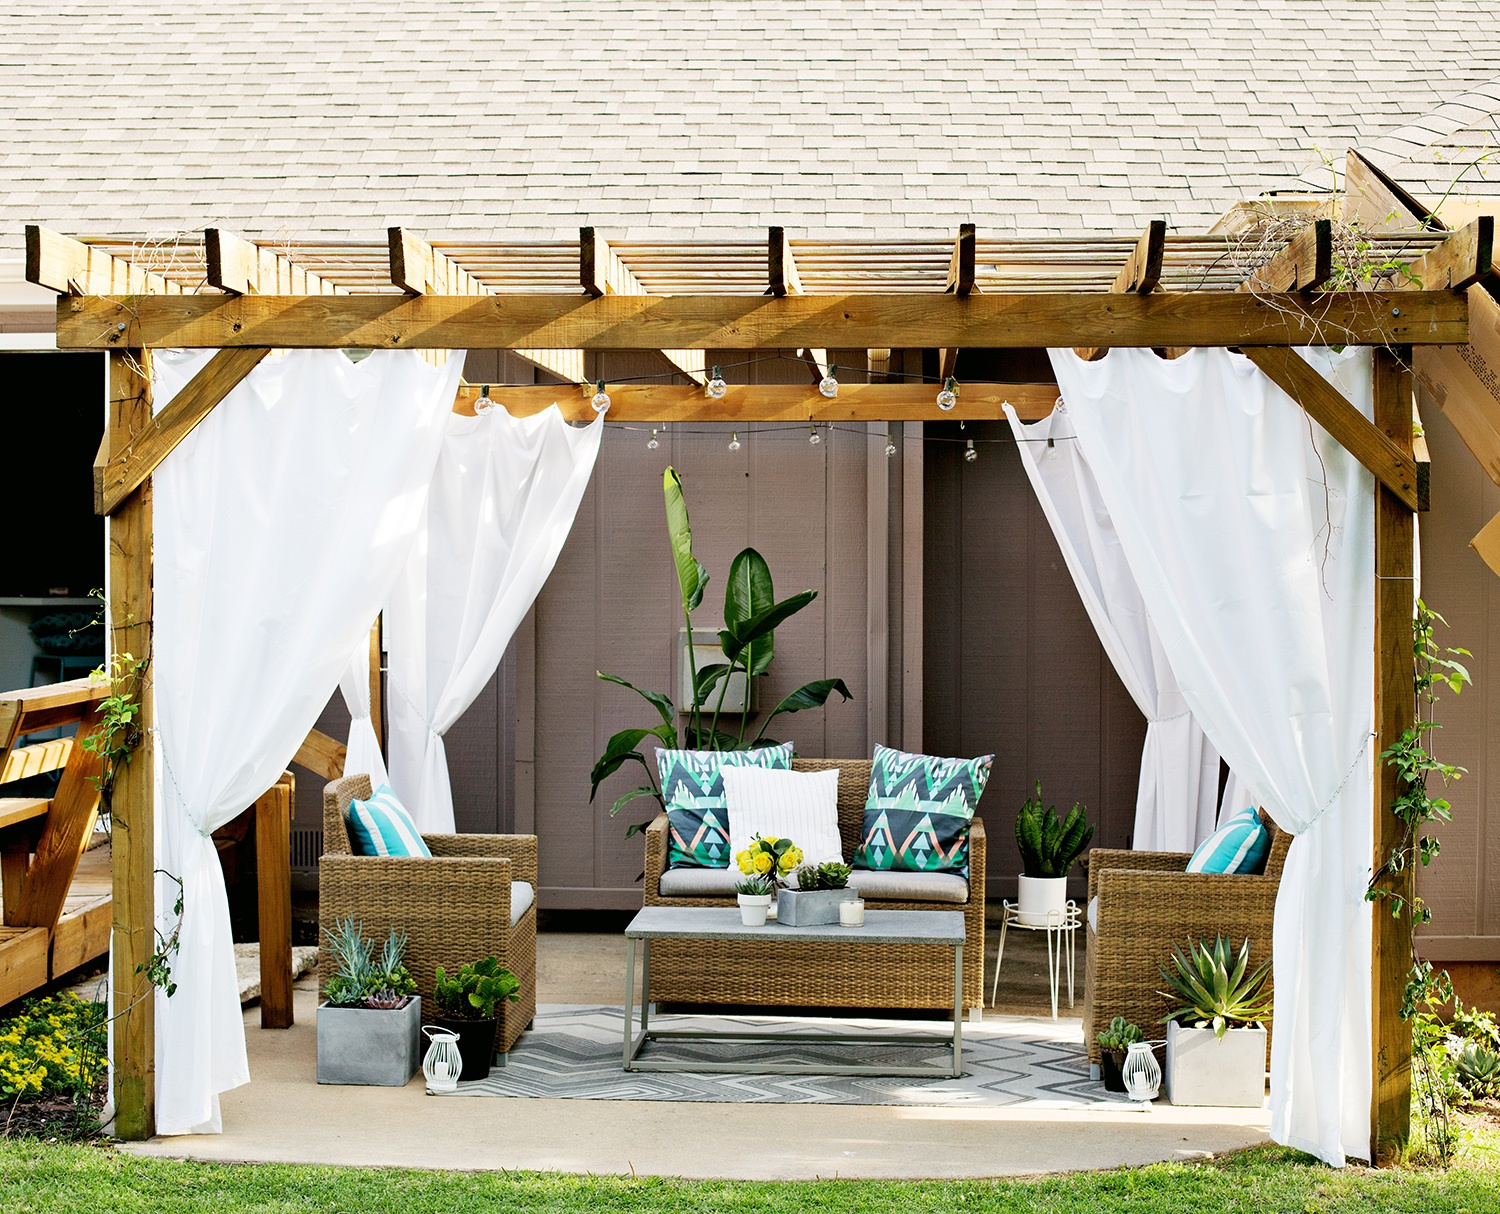 Pergola with Curtain Design Idea for Patio Privacy- Amazing Deck